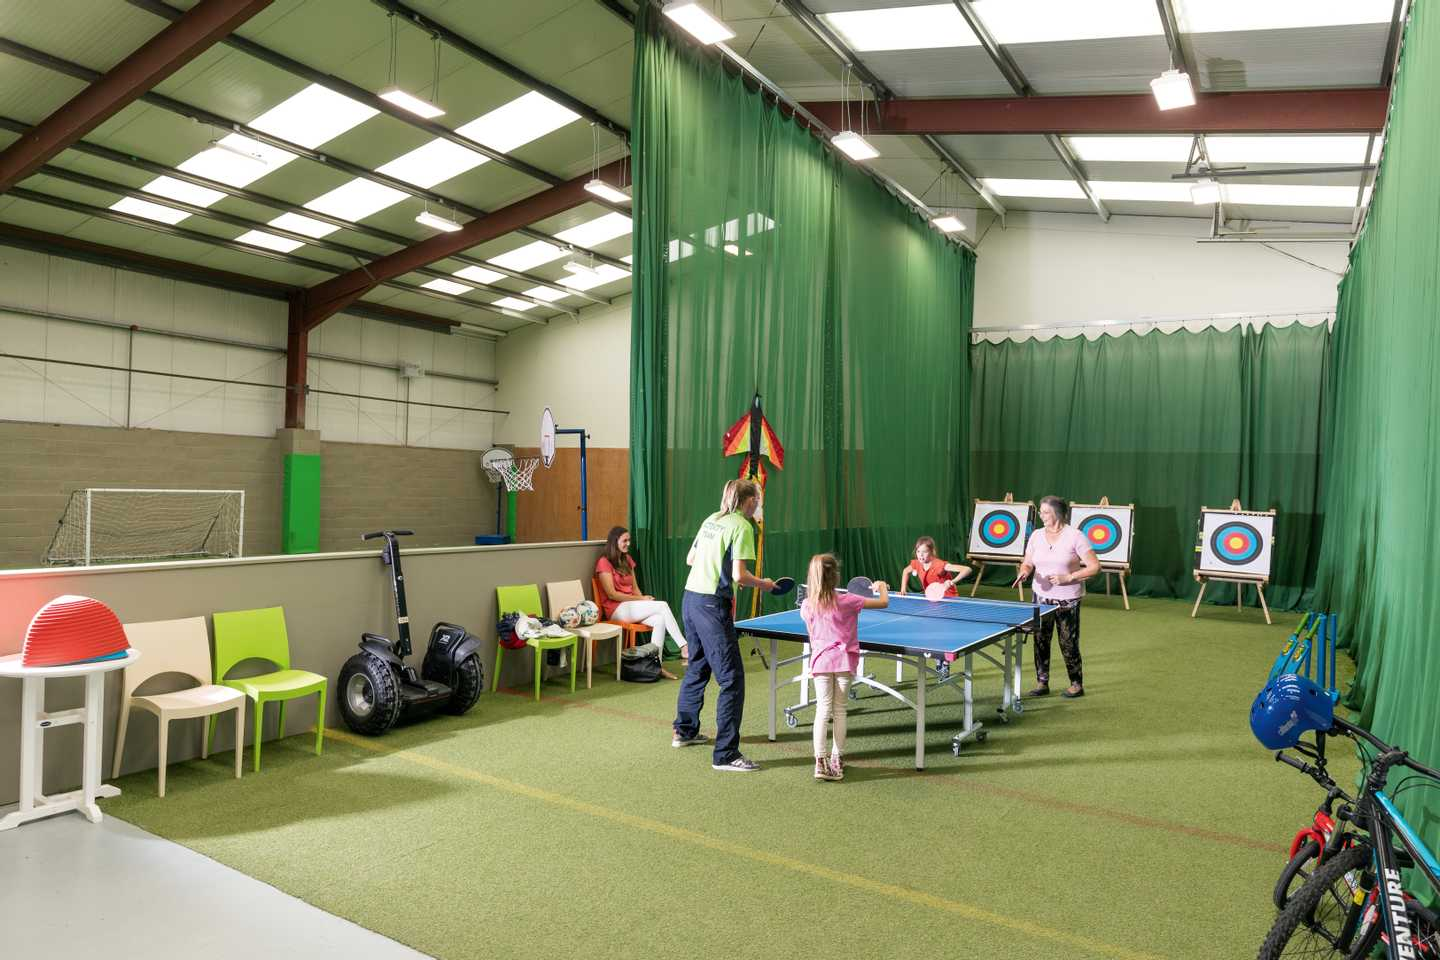 Guests playing ping pong in the all-weather Activity Barn